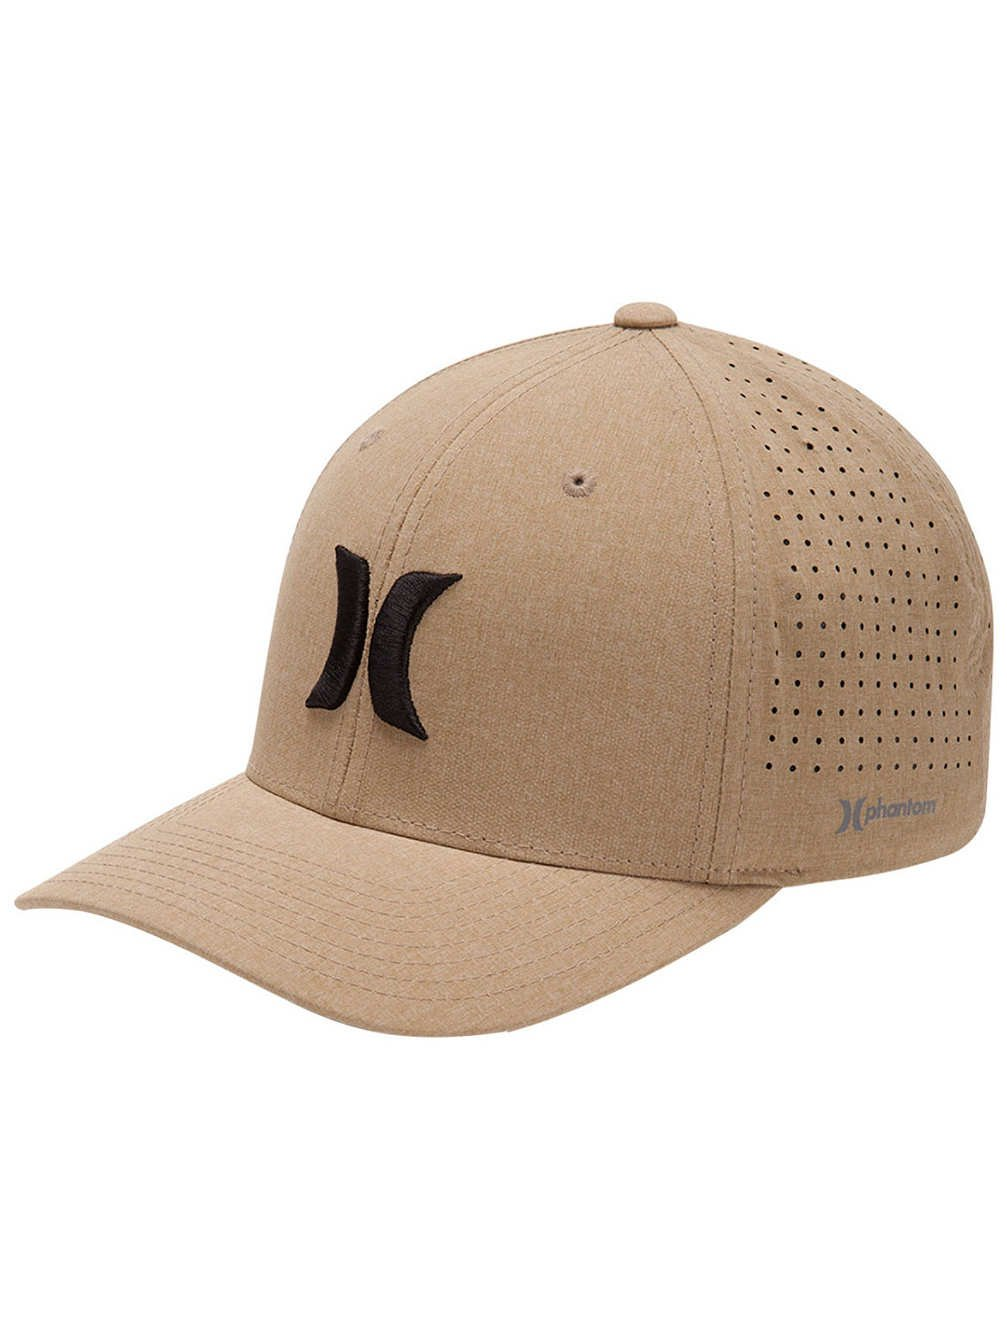 Hurley Mens WSL Phantom Cap L/XL Khaki/Black